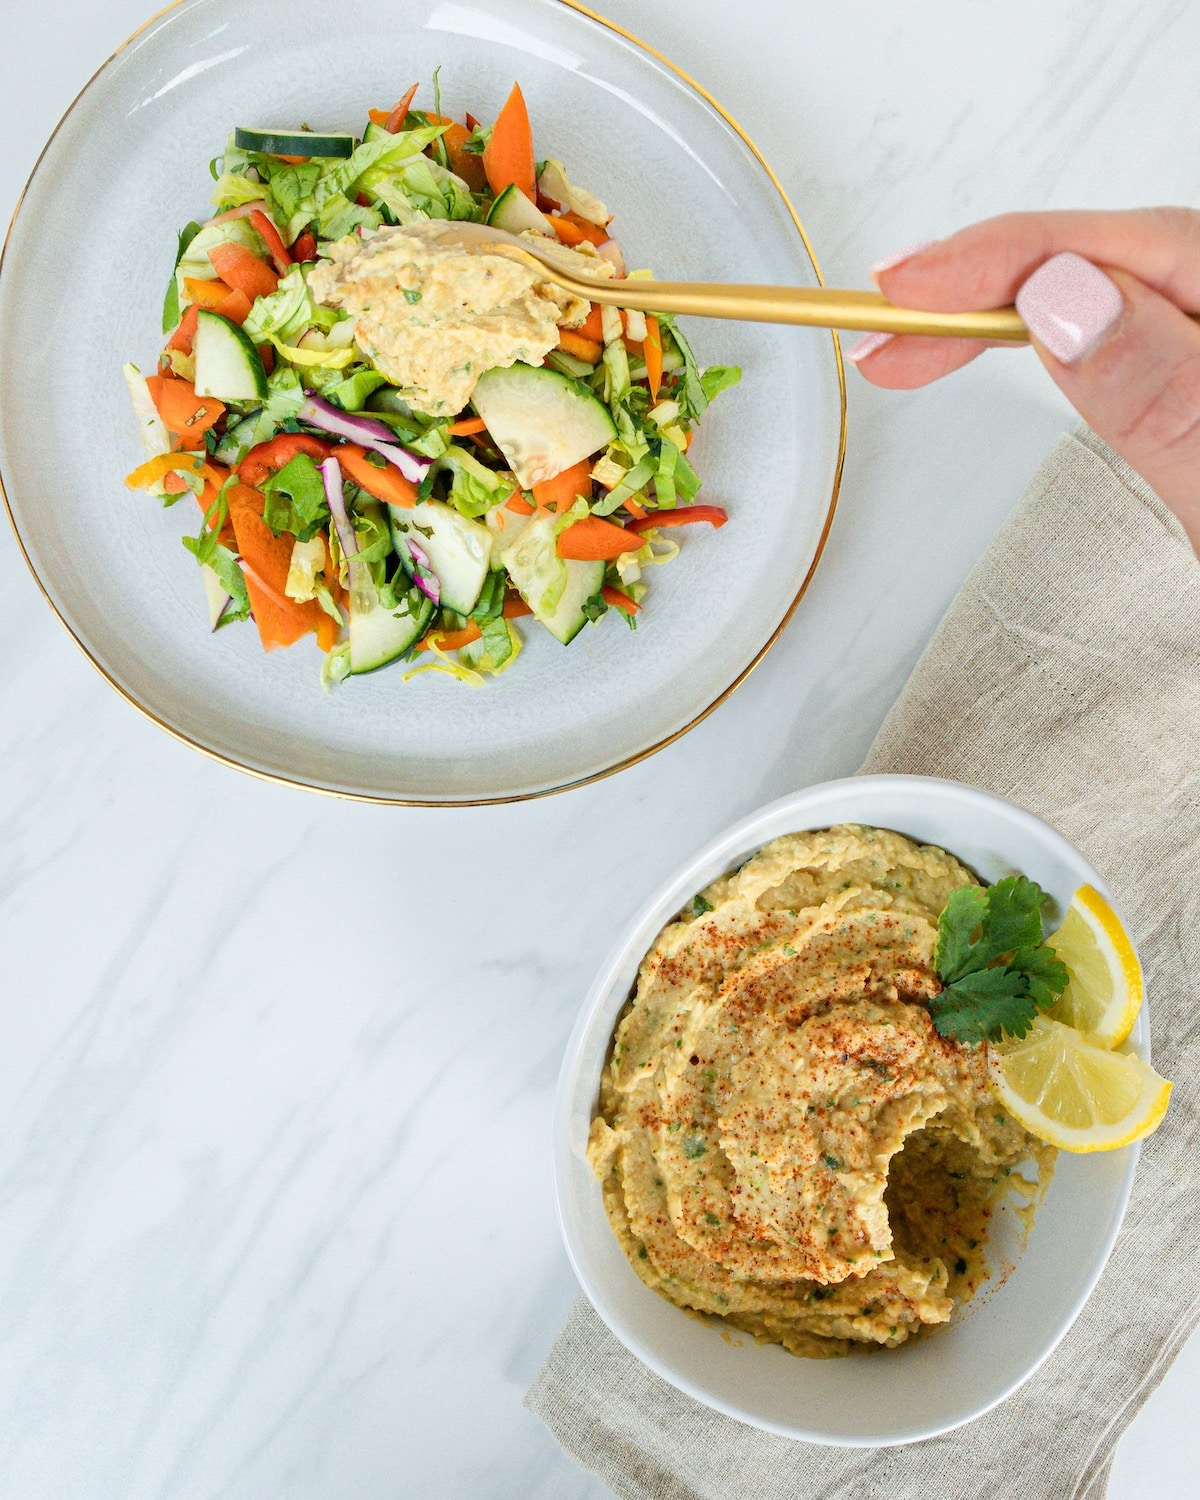 Oil-free hummus in white bowl with cilantro and lemon, on gray napkin. Bright salad on plate to left, gold spoon scooping hummus onto salad.